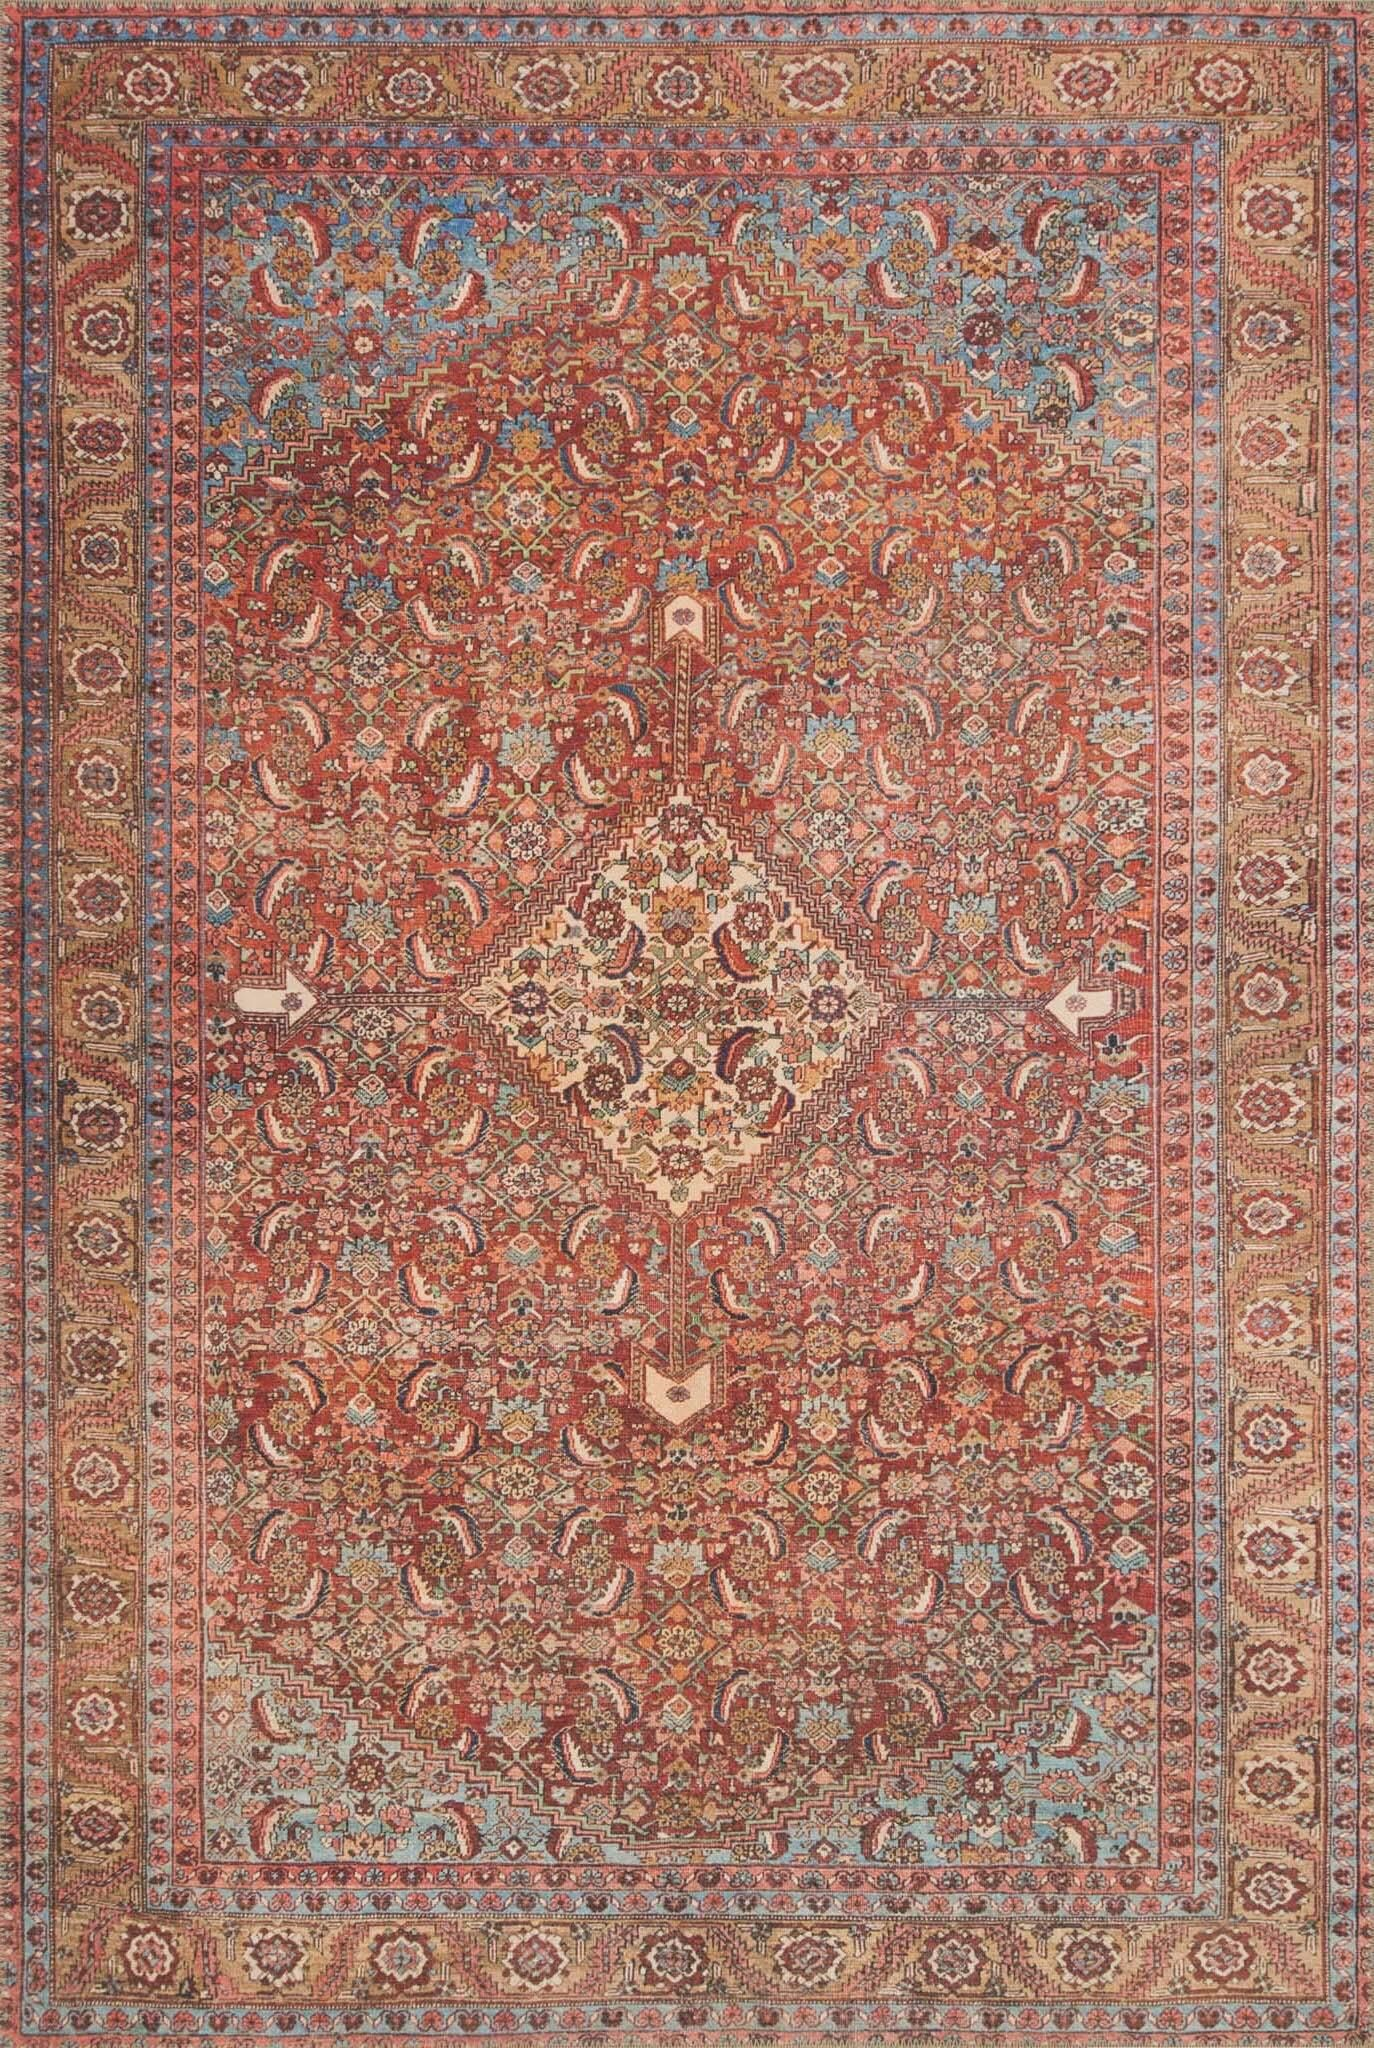 Raul Red Area Rug Rug Size: Runner 2'6